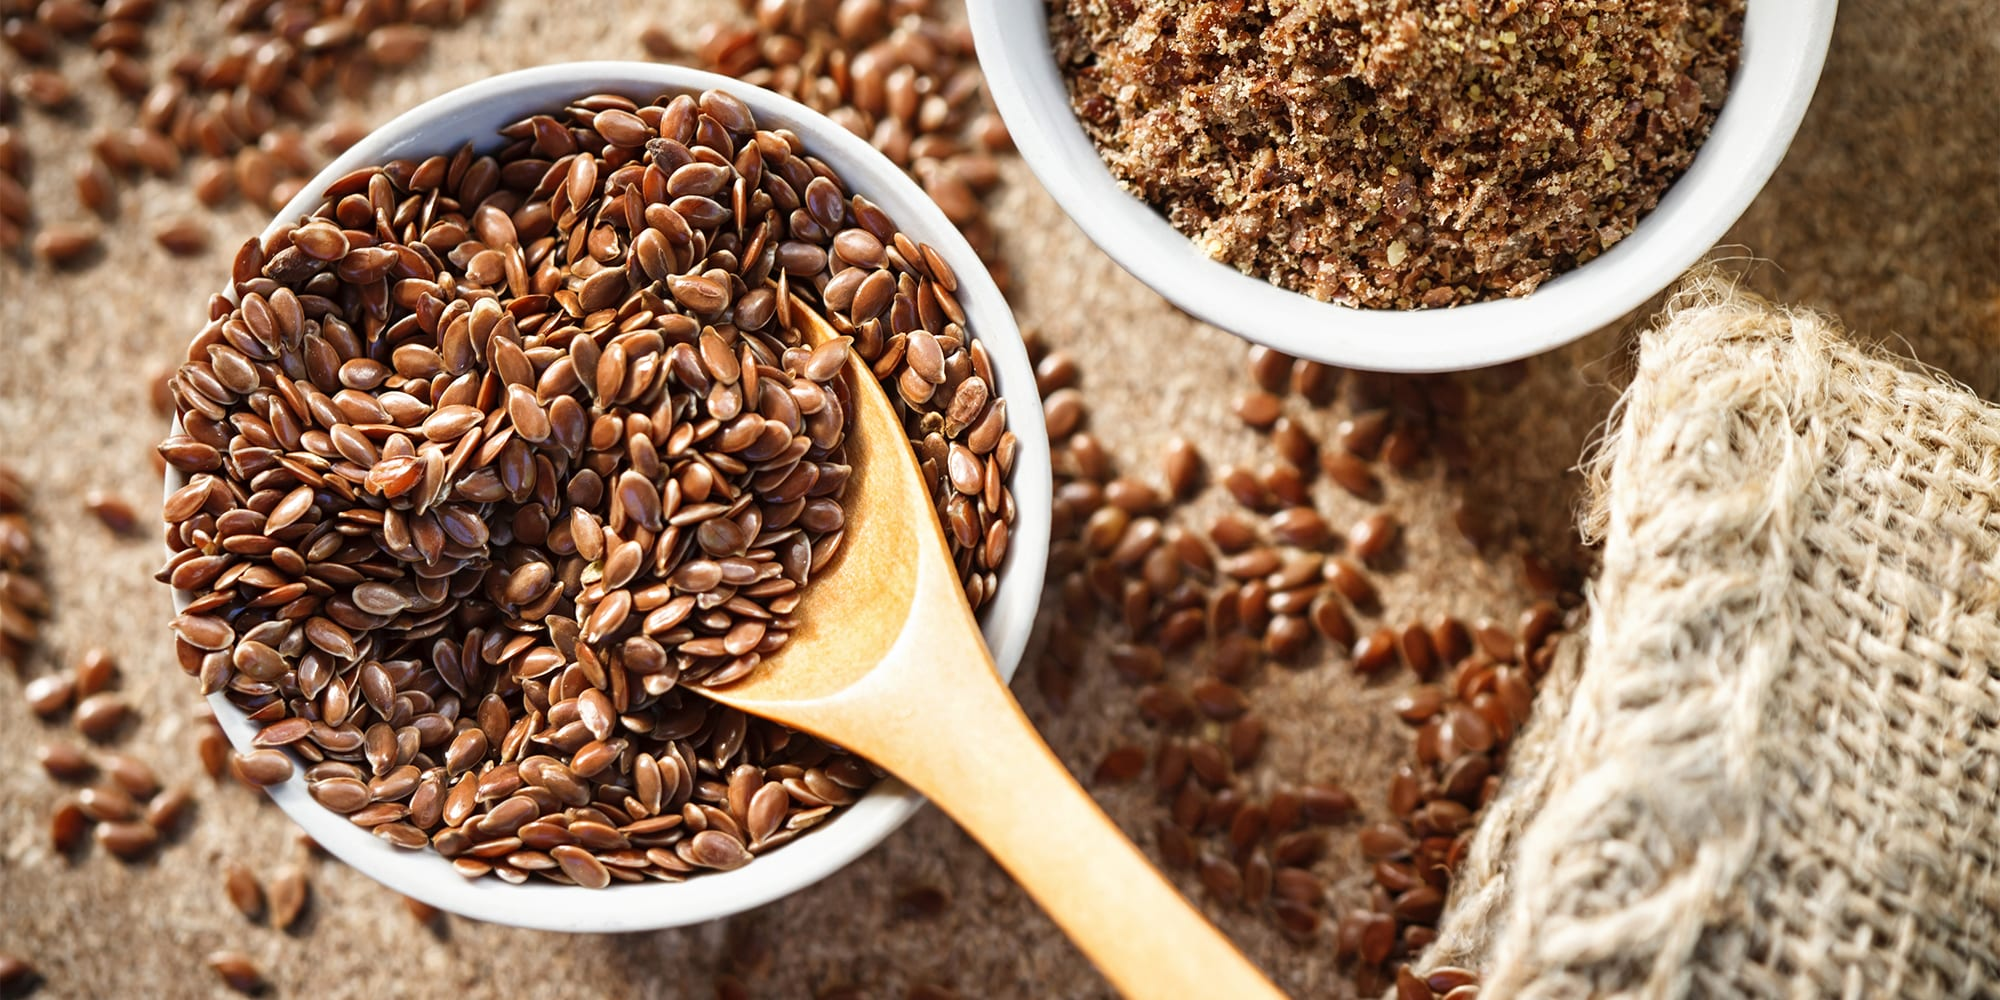 foods to fight fatigue - flax seeds